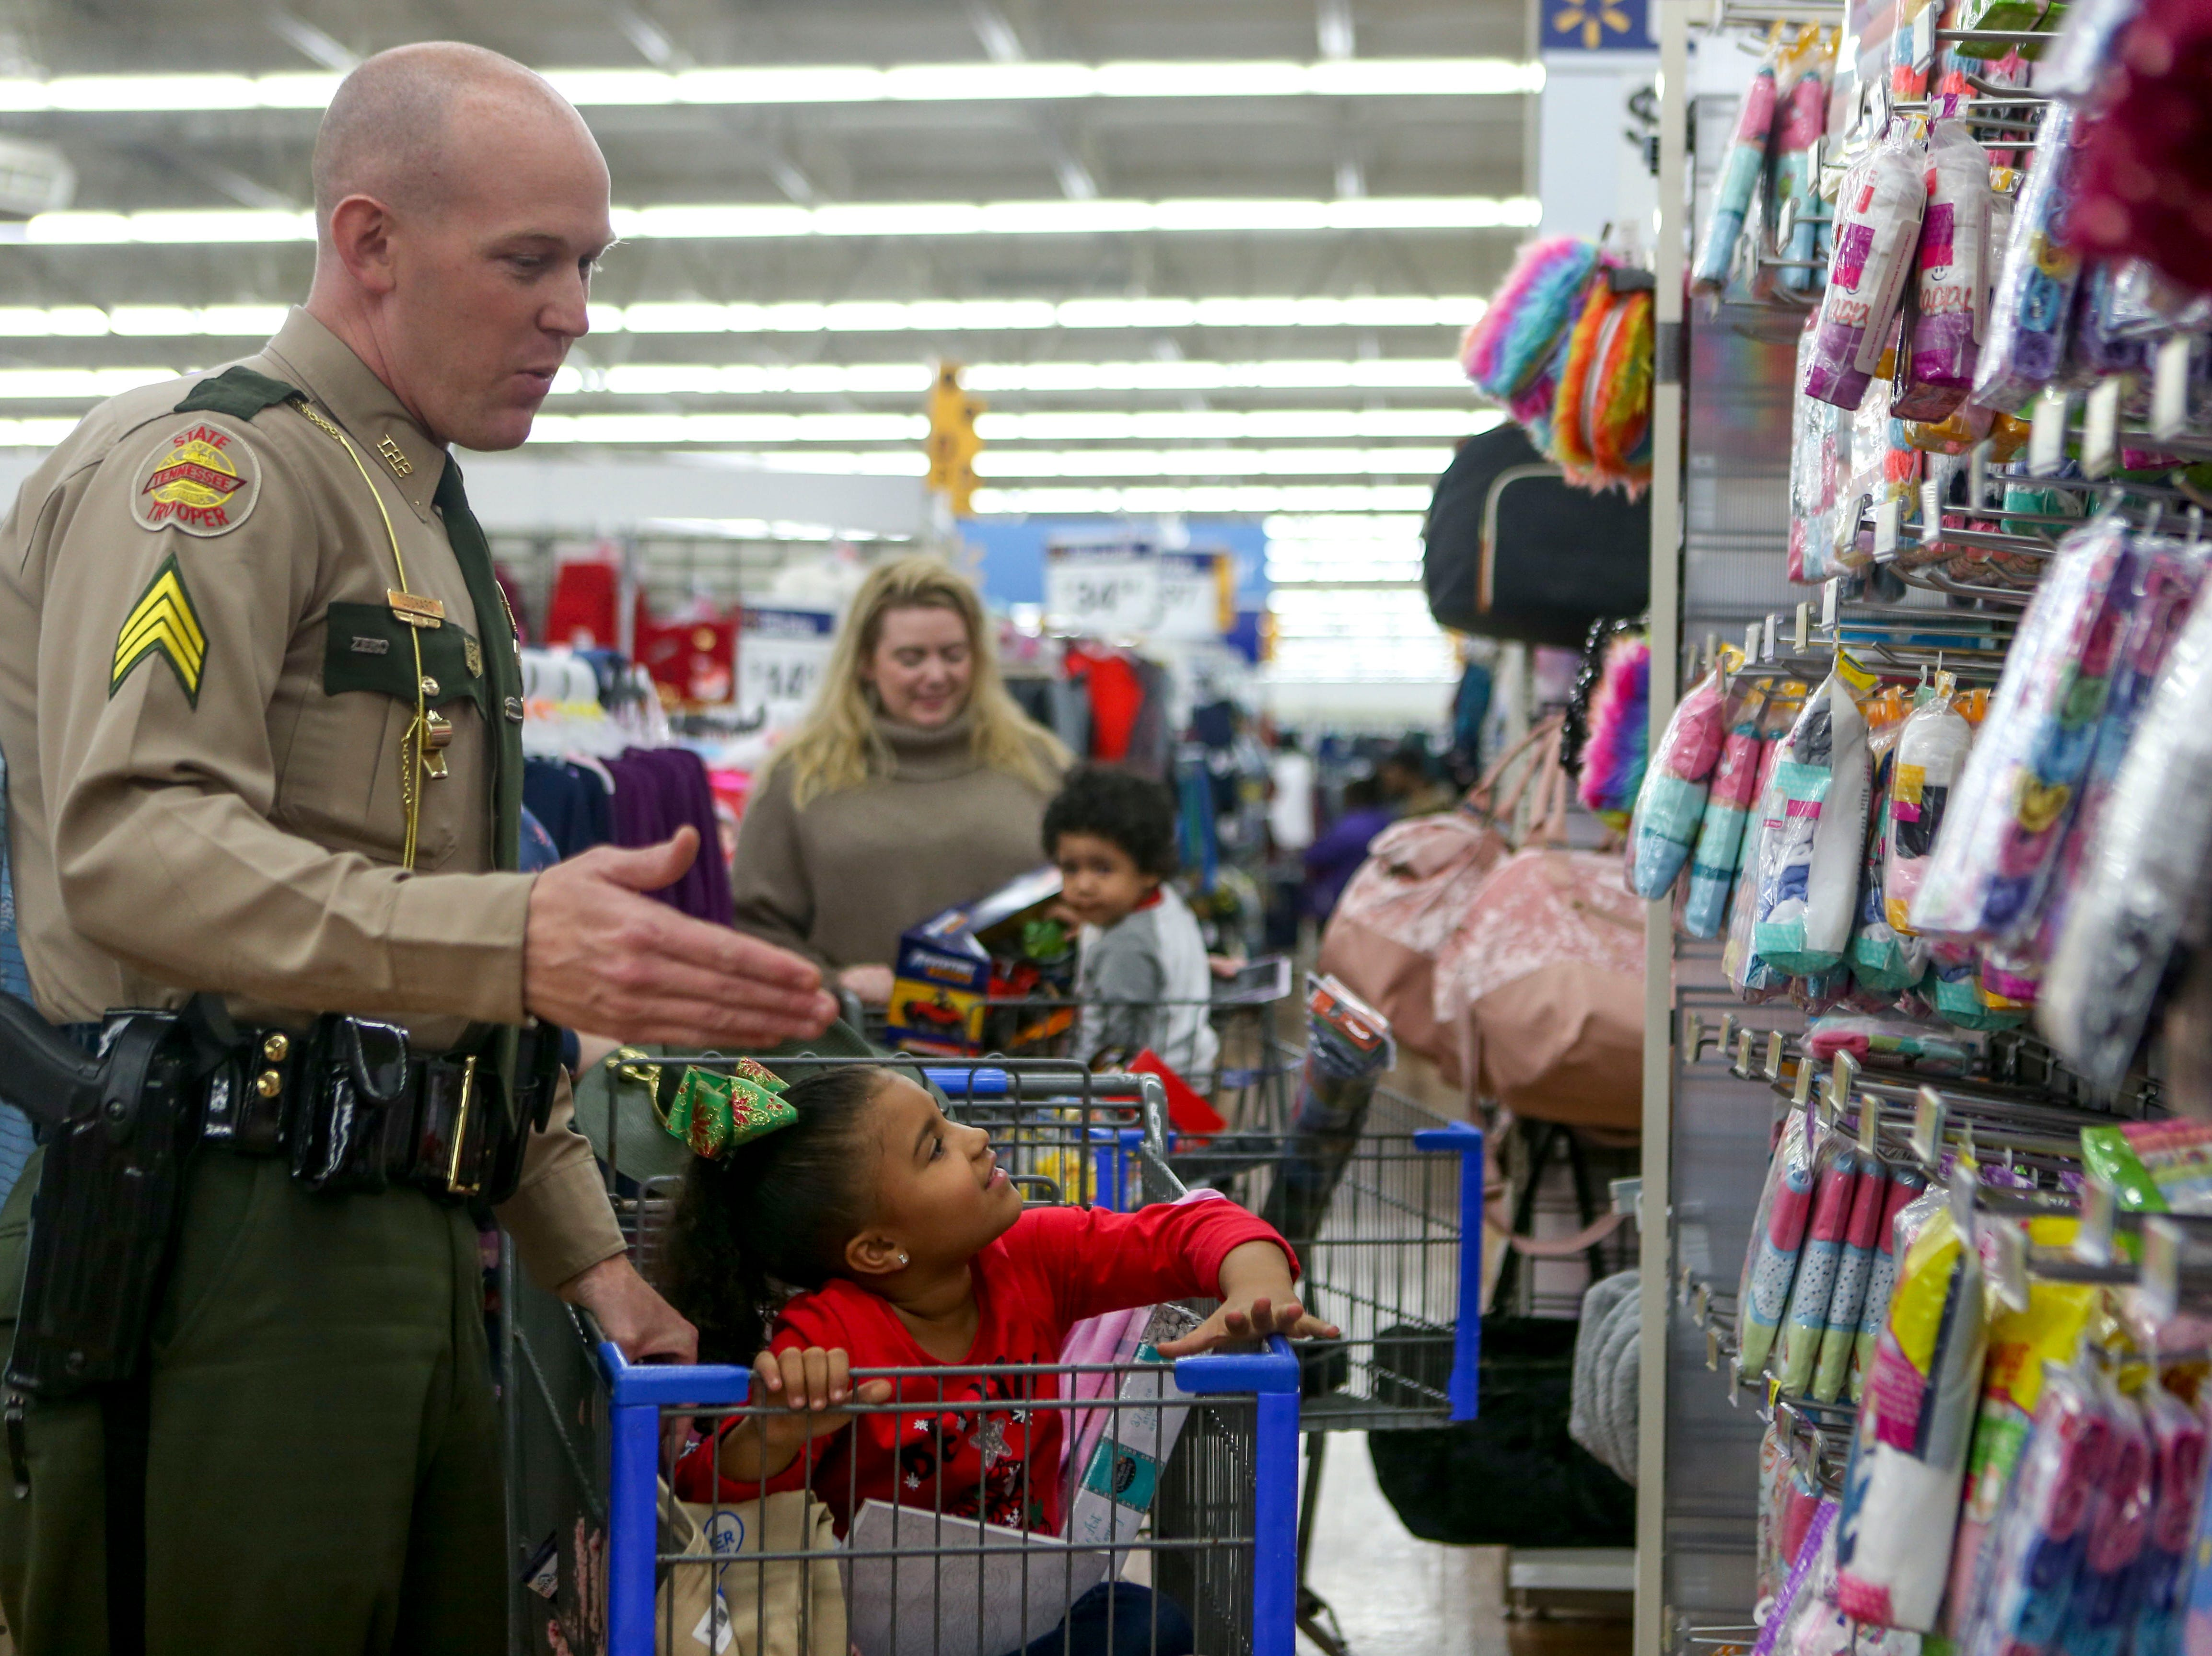 Trooper Michael Lockard helps his partner Kastle Mays, 5, examine clothing to purchase during the shopping time for the annual Shop with a Cop program at Walmart in Milan, Tenn., on Thursday, Dec. 13, 2018.